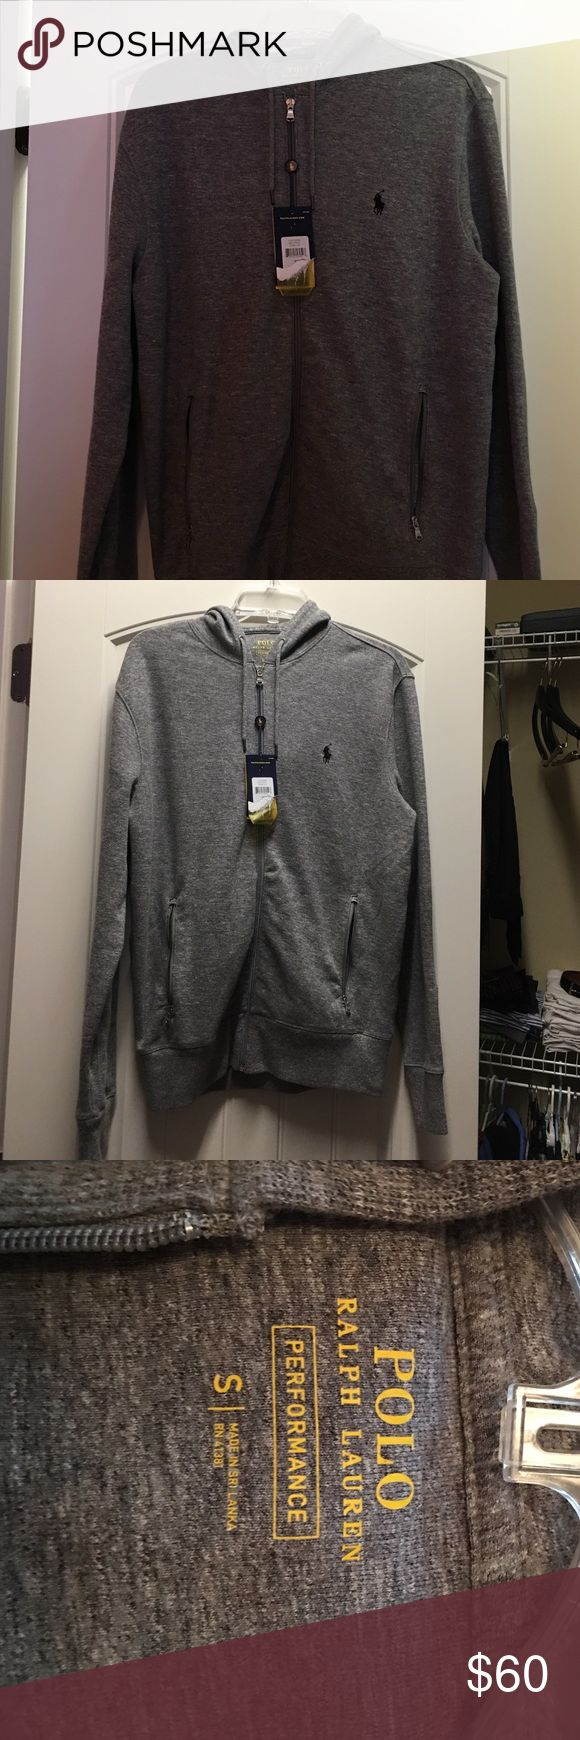 Polo Ralph Laurent Hoodie Polo Ralph Laurent Hoodie. Size Small. Brand new with tags. Color Gray. Polo by Ralph Lauren Shirts Sweatshirts & Hoodies